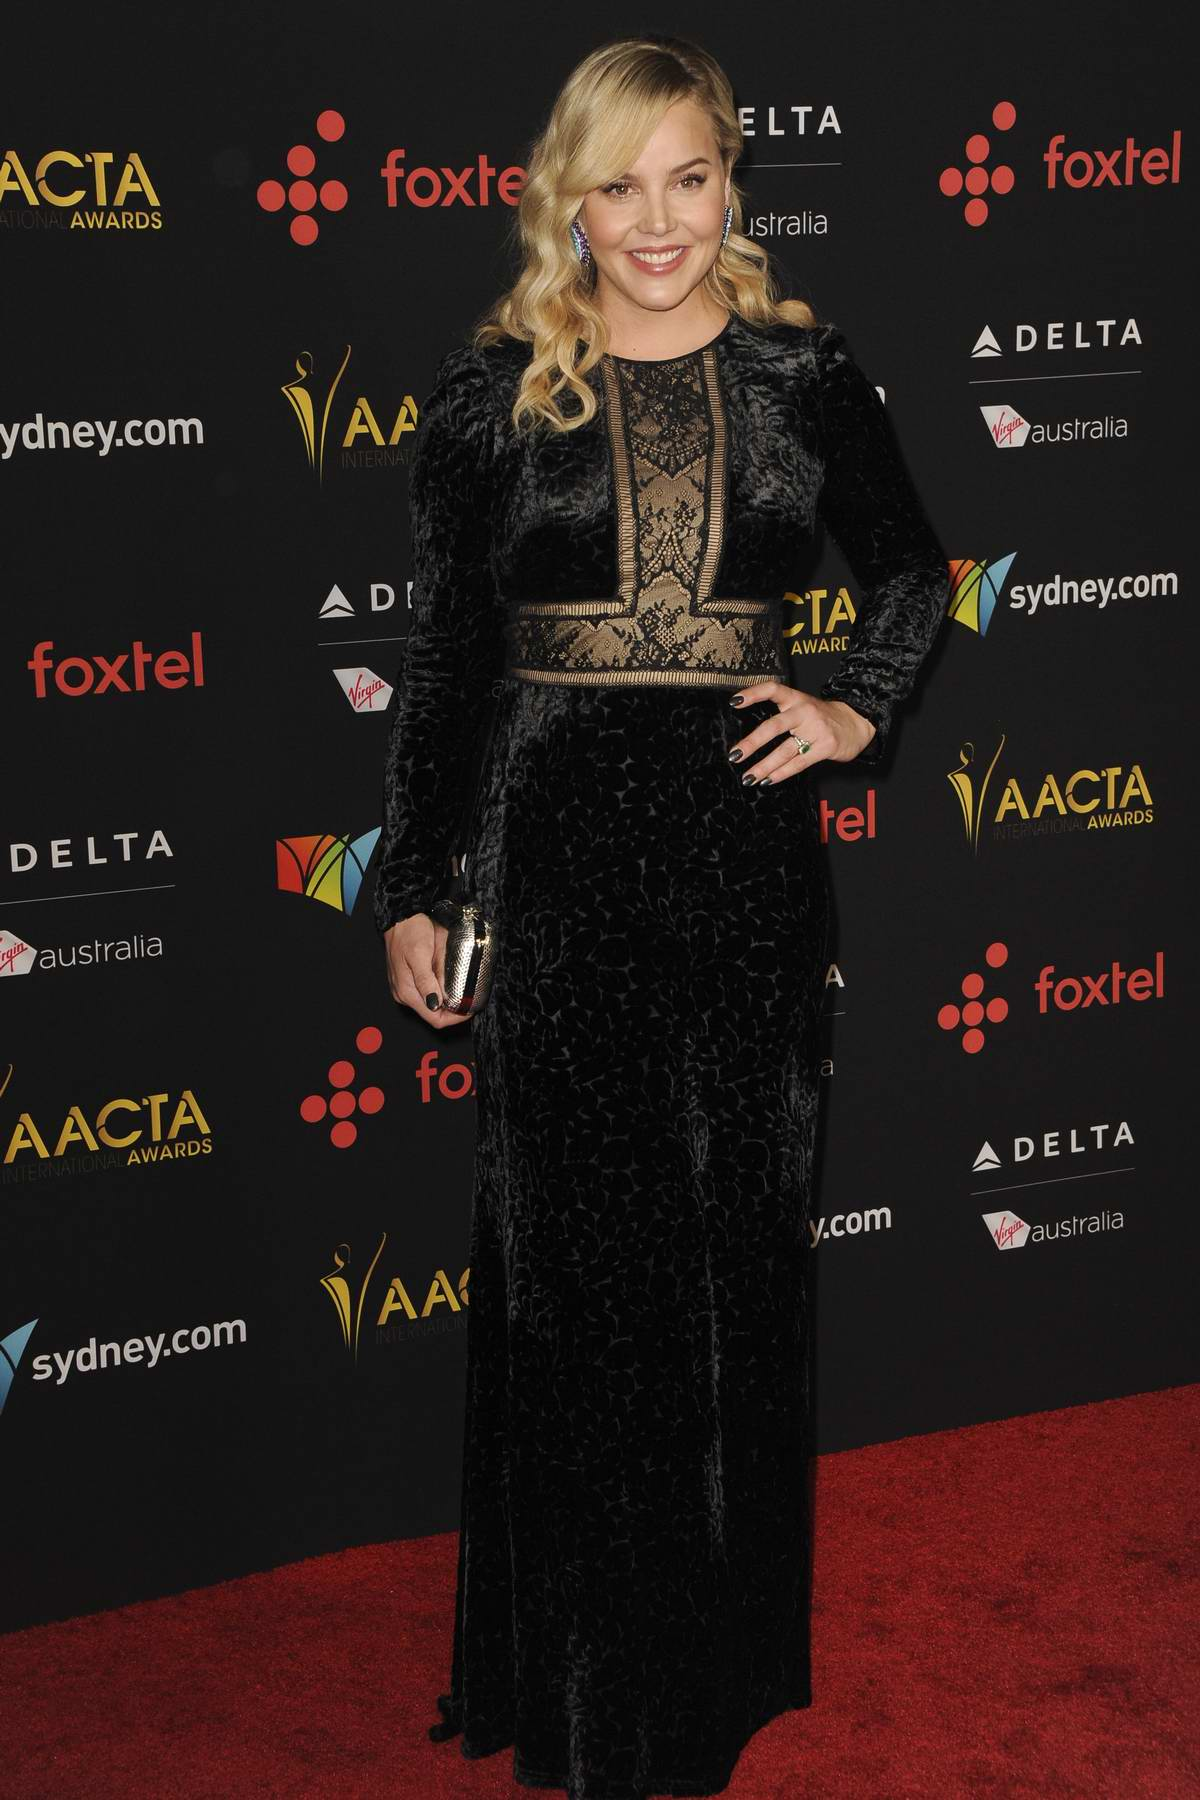 Abbie Cornish attends the 7th AACTA International Awards in Los Angeles